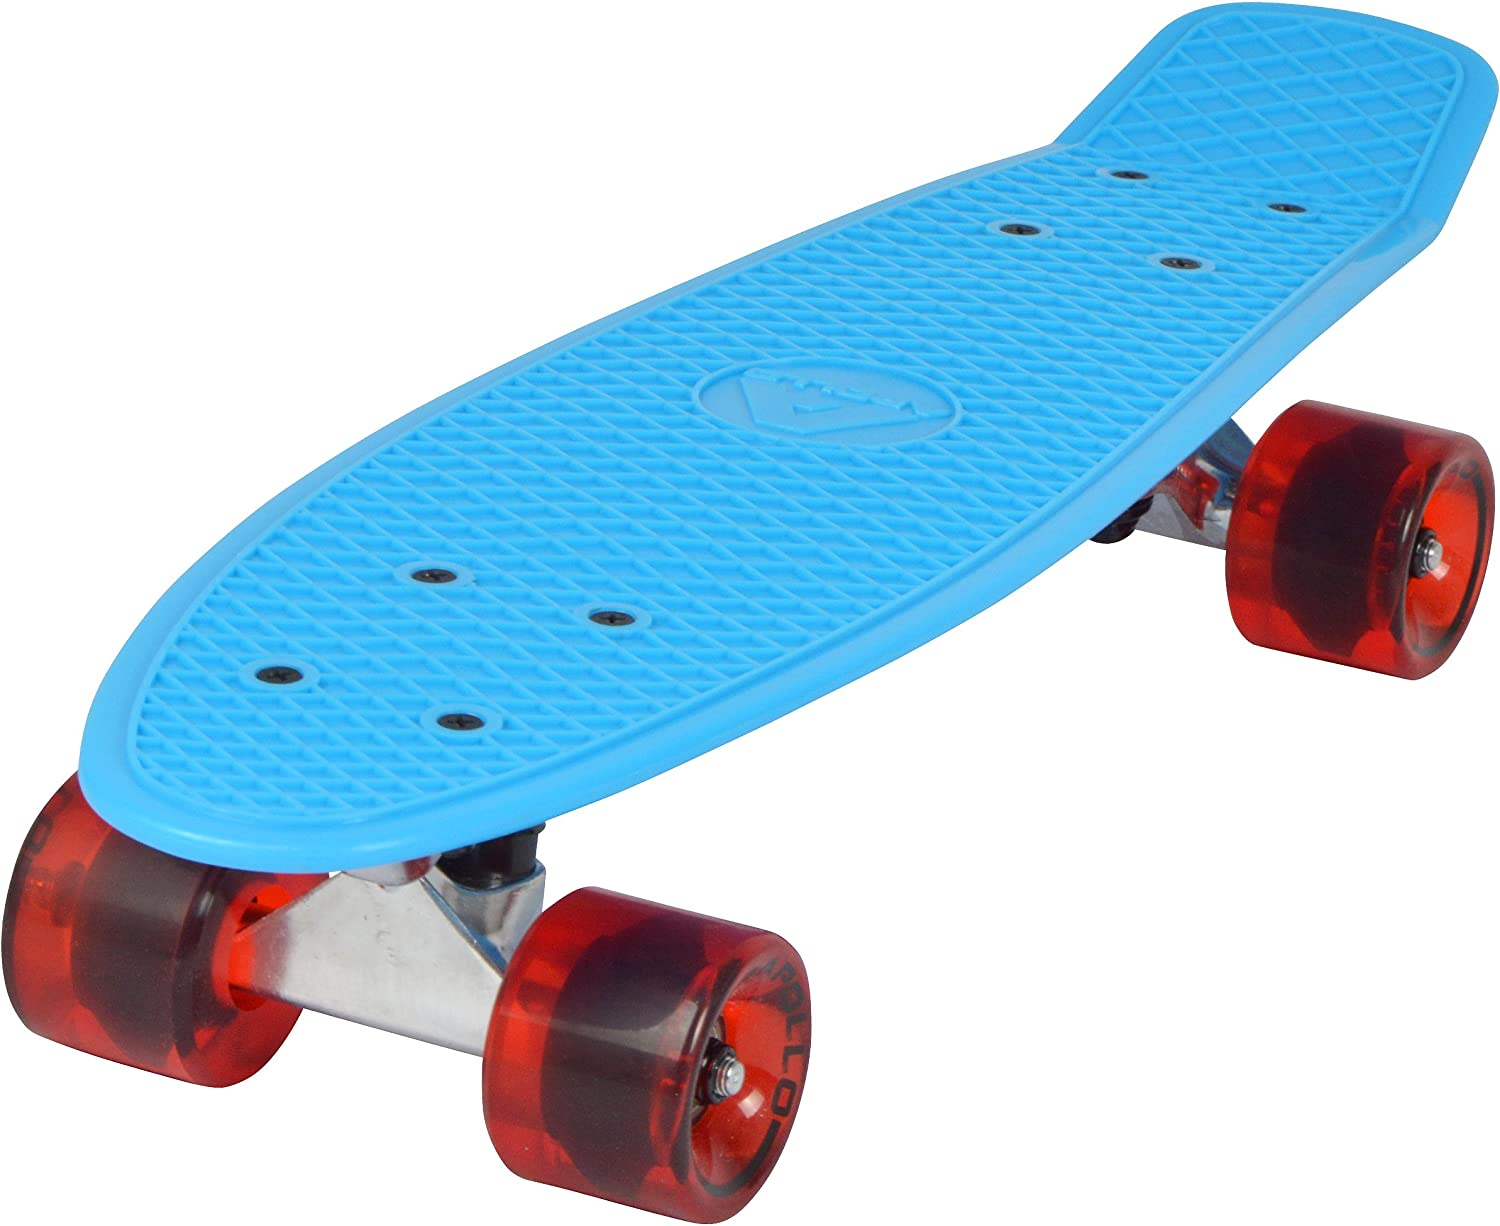 Apollo Fancy Skateboard, Vintage Mini Cruiser, Komplettboard, 22.5inch (57,15 cm)